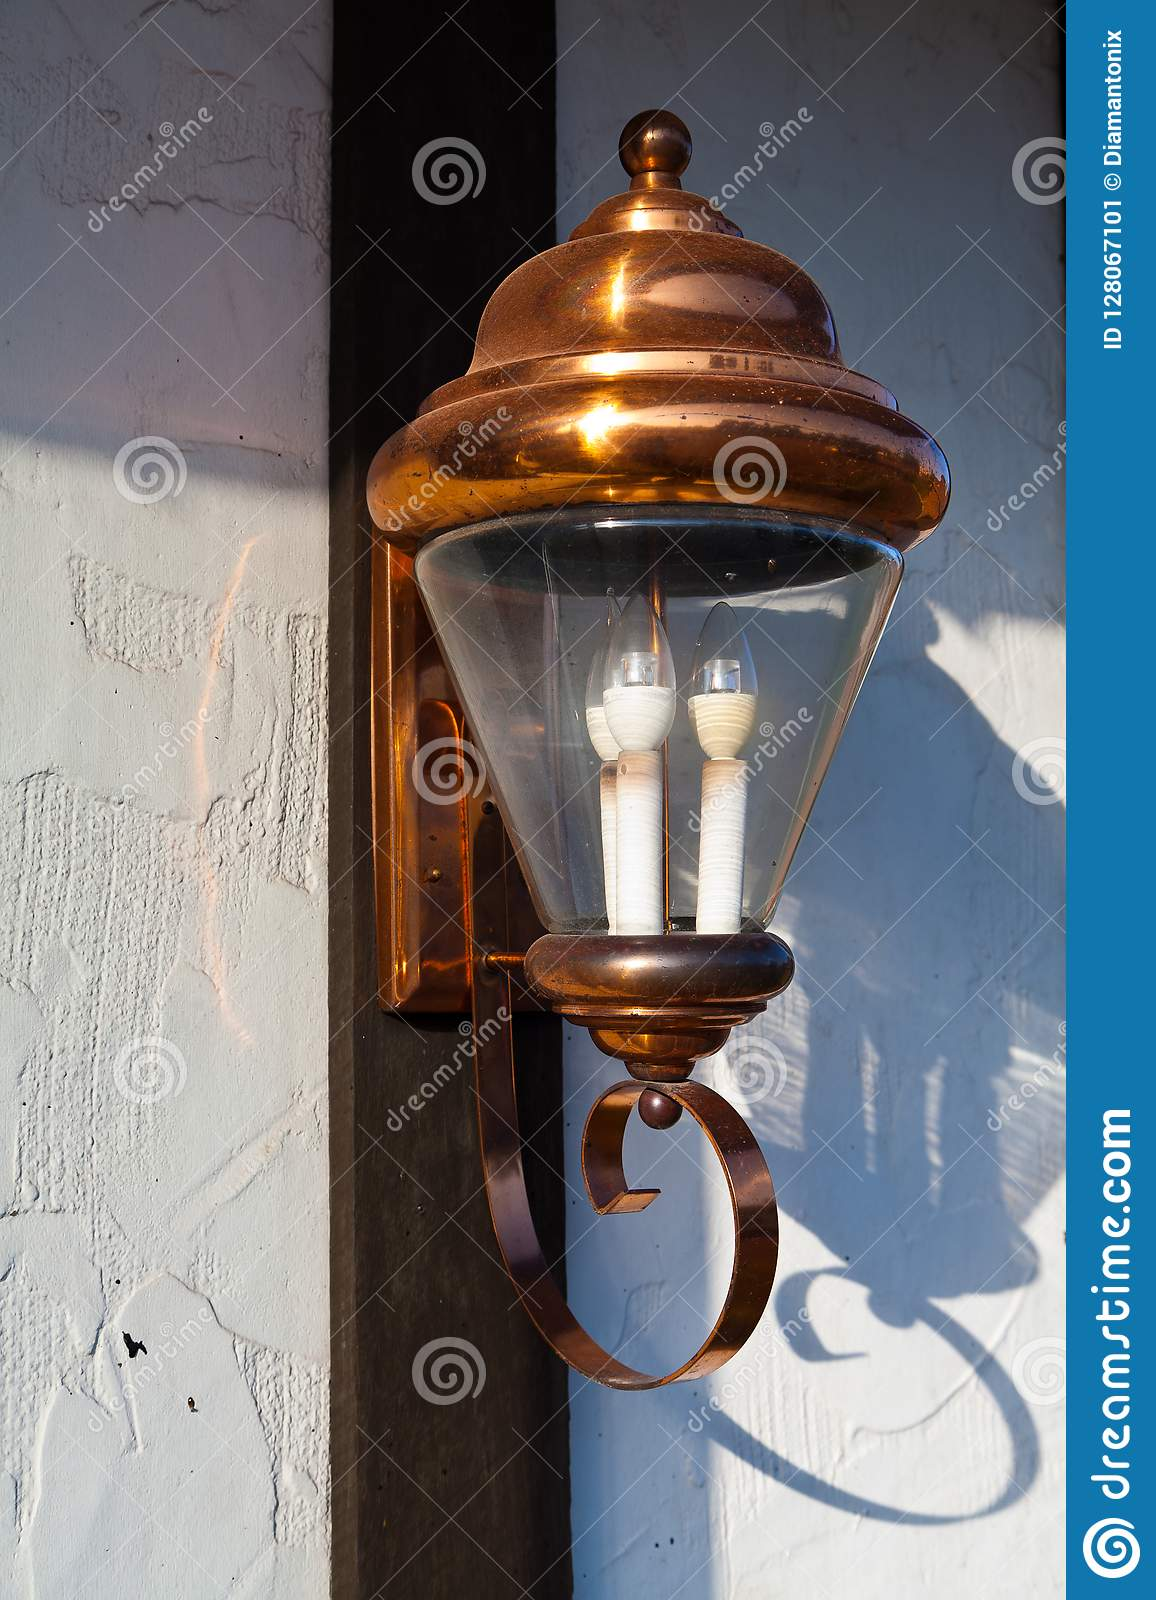 Vintage Copper Light On House Wall Stock Image Image Of Country Illumination 128067101